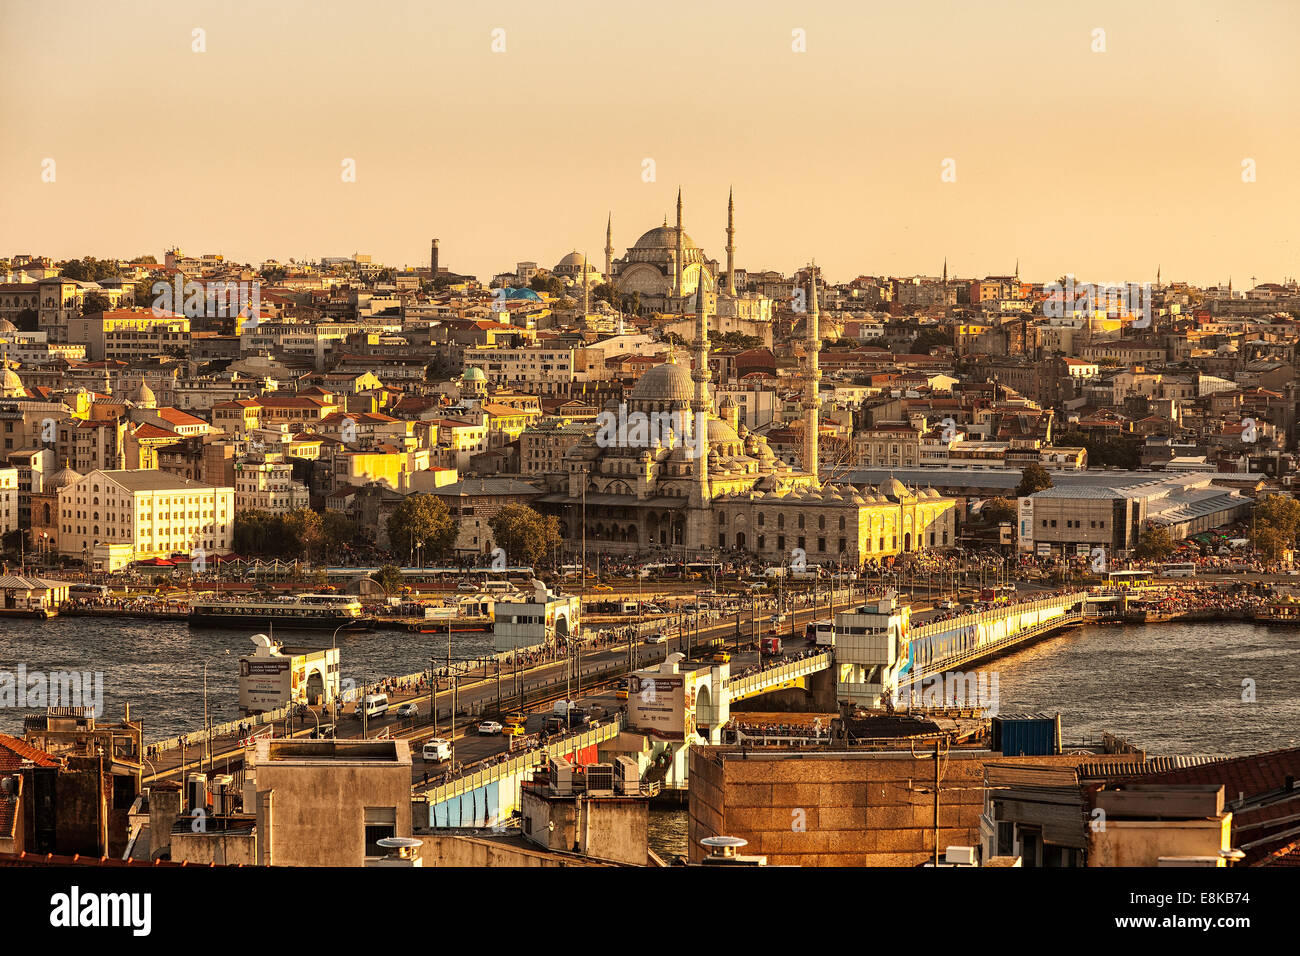 Galata Bridge on the Golden Horn at sunset,Karakoy,Istanbul,Turkey - Stock Image